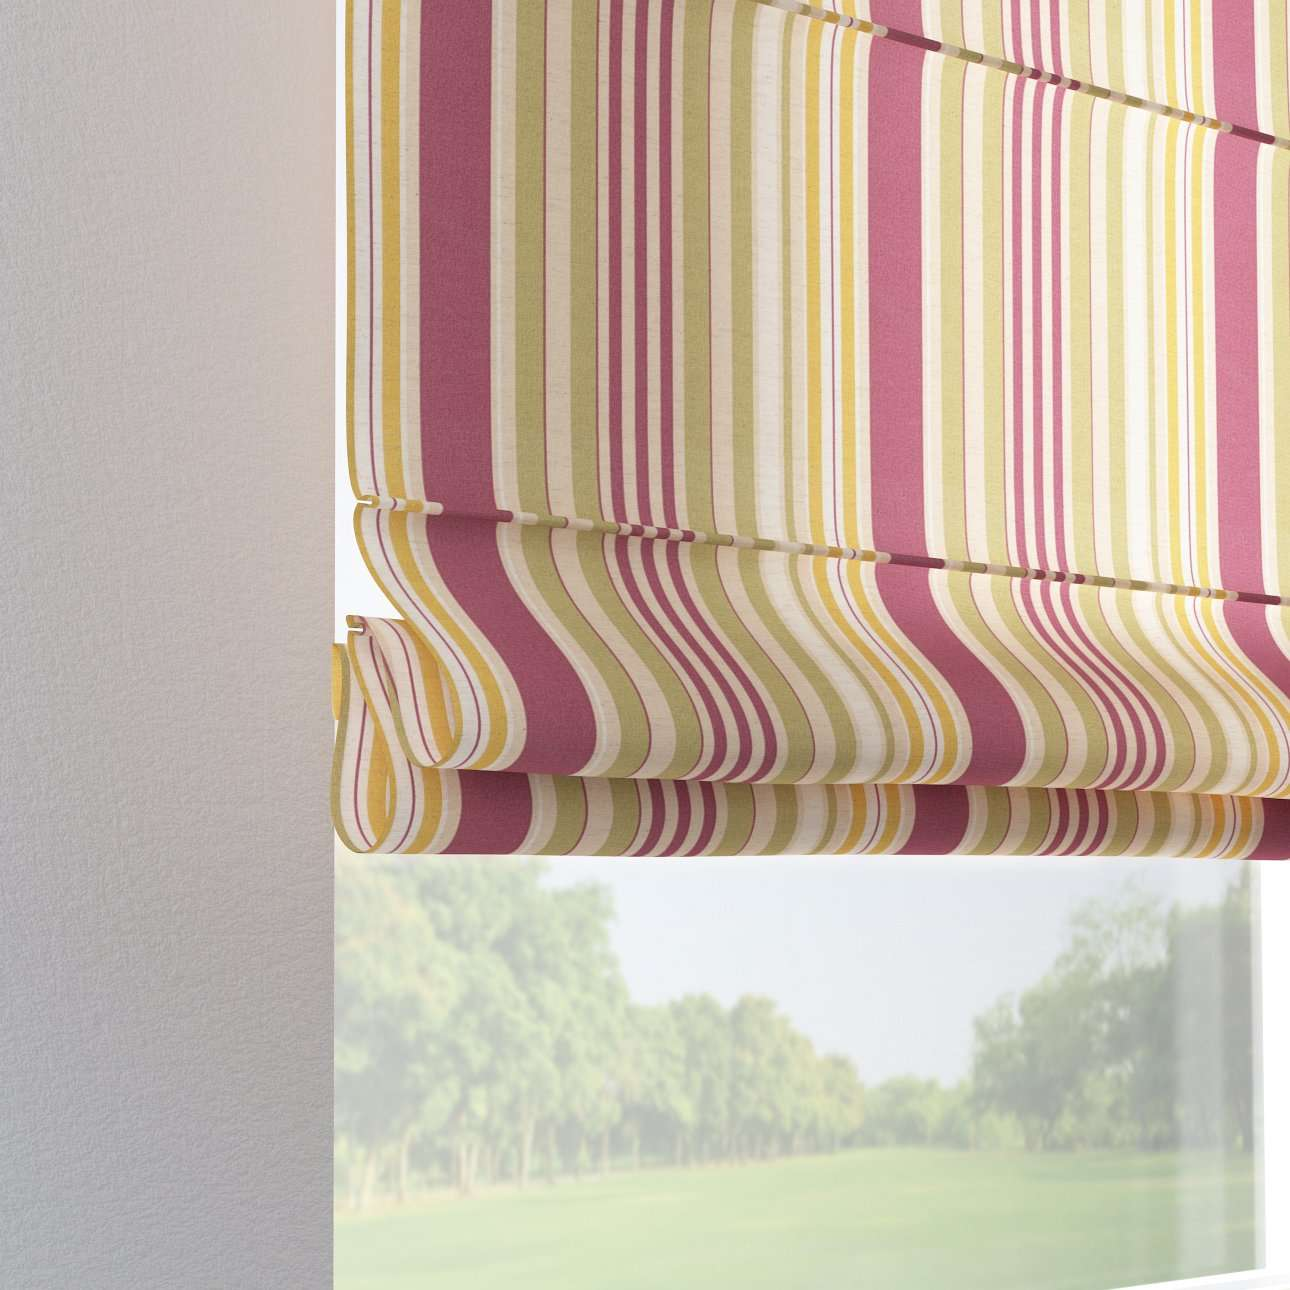 Verona tab top roman blind 80 x 170 cm (31.5 x 67 inch) in collection Londres, fabric: 122-09